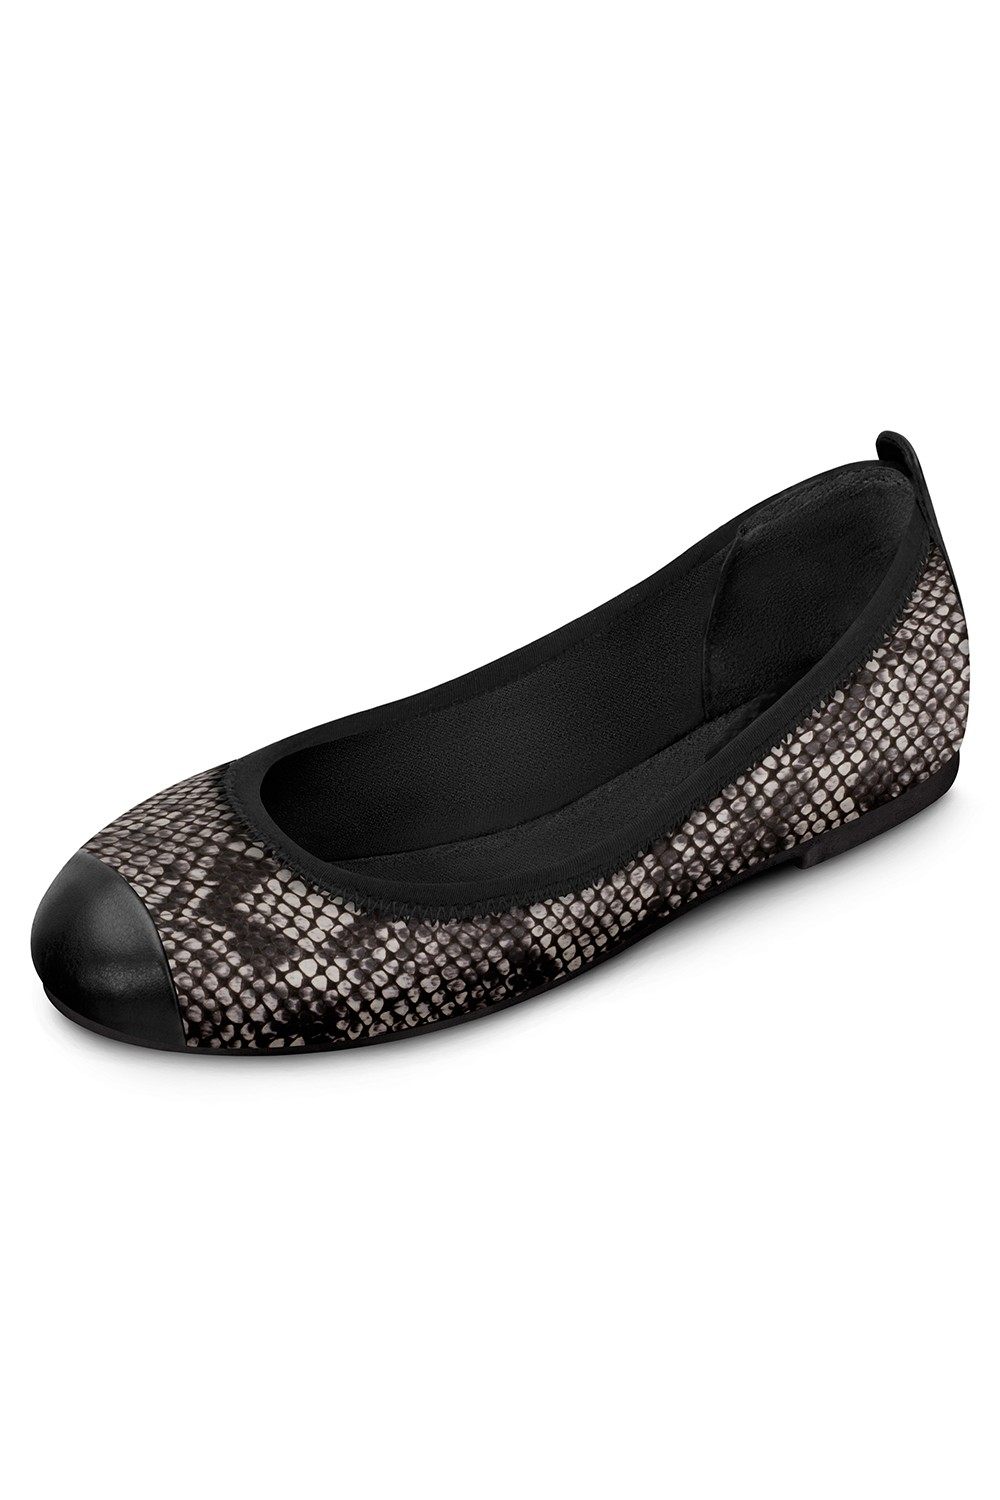 Python Ballet Flat Girls Fashion Shoes